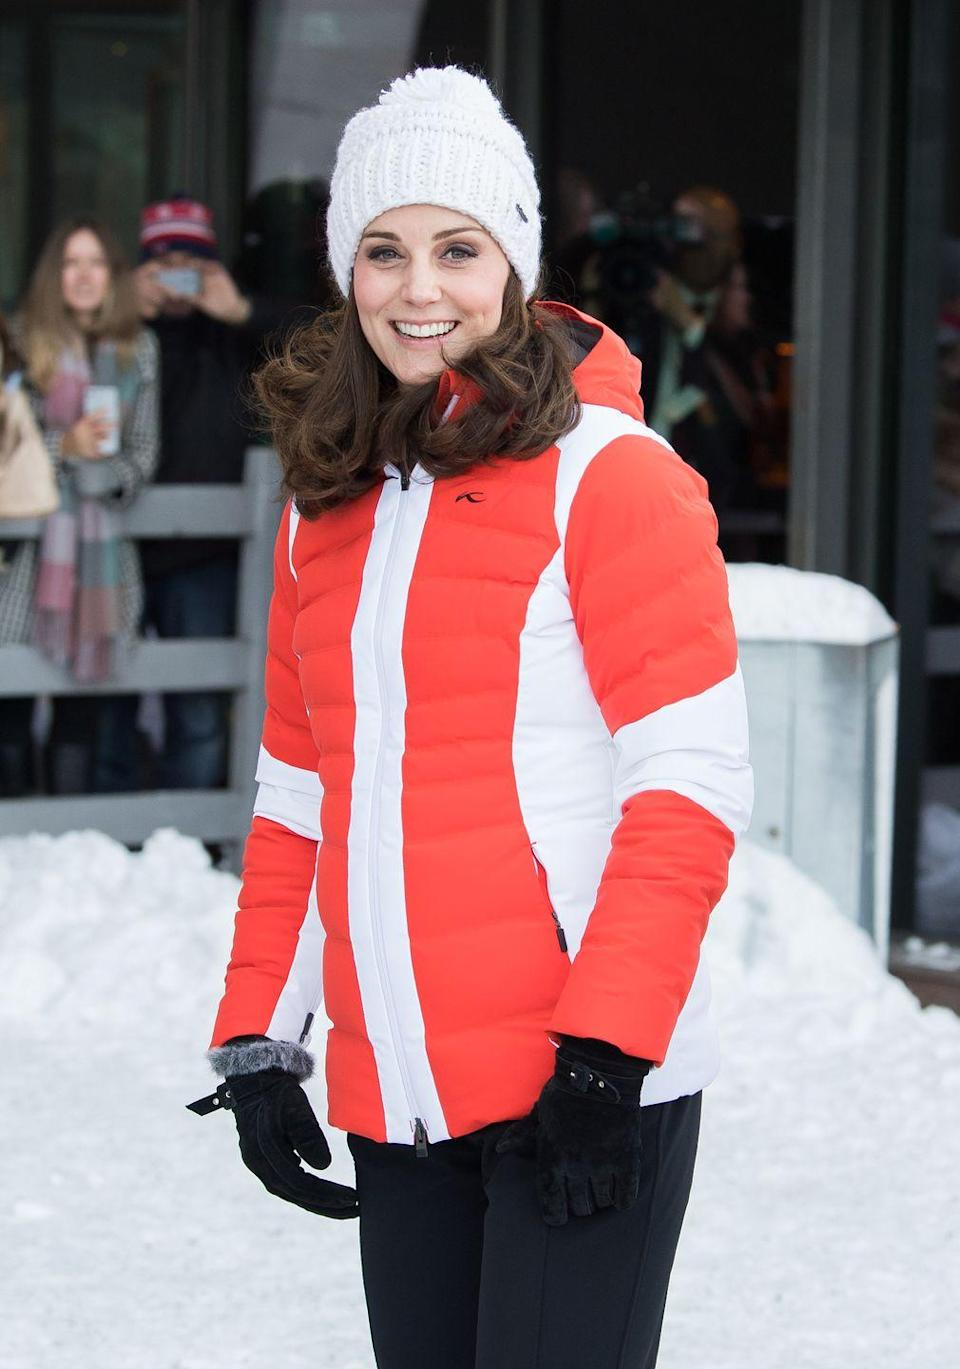 <p>The Duchess hit the slopes in Oslo, Norway, bundling up for an event organized by the Norwegian Ski Federation. </p>